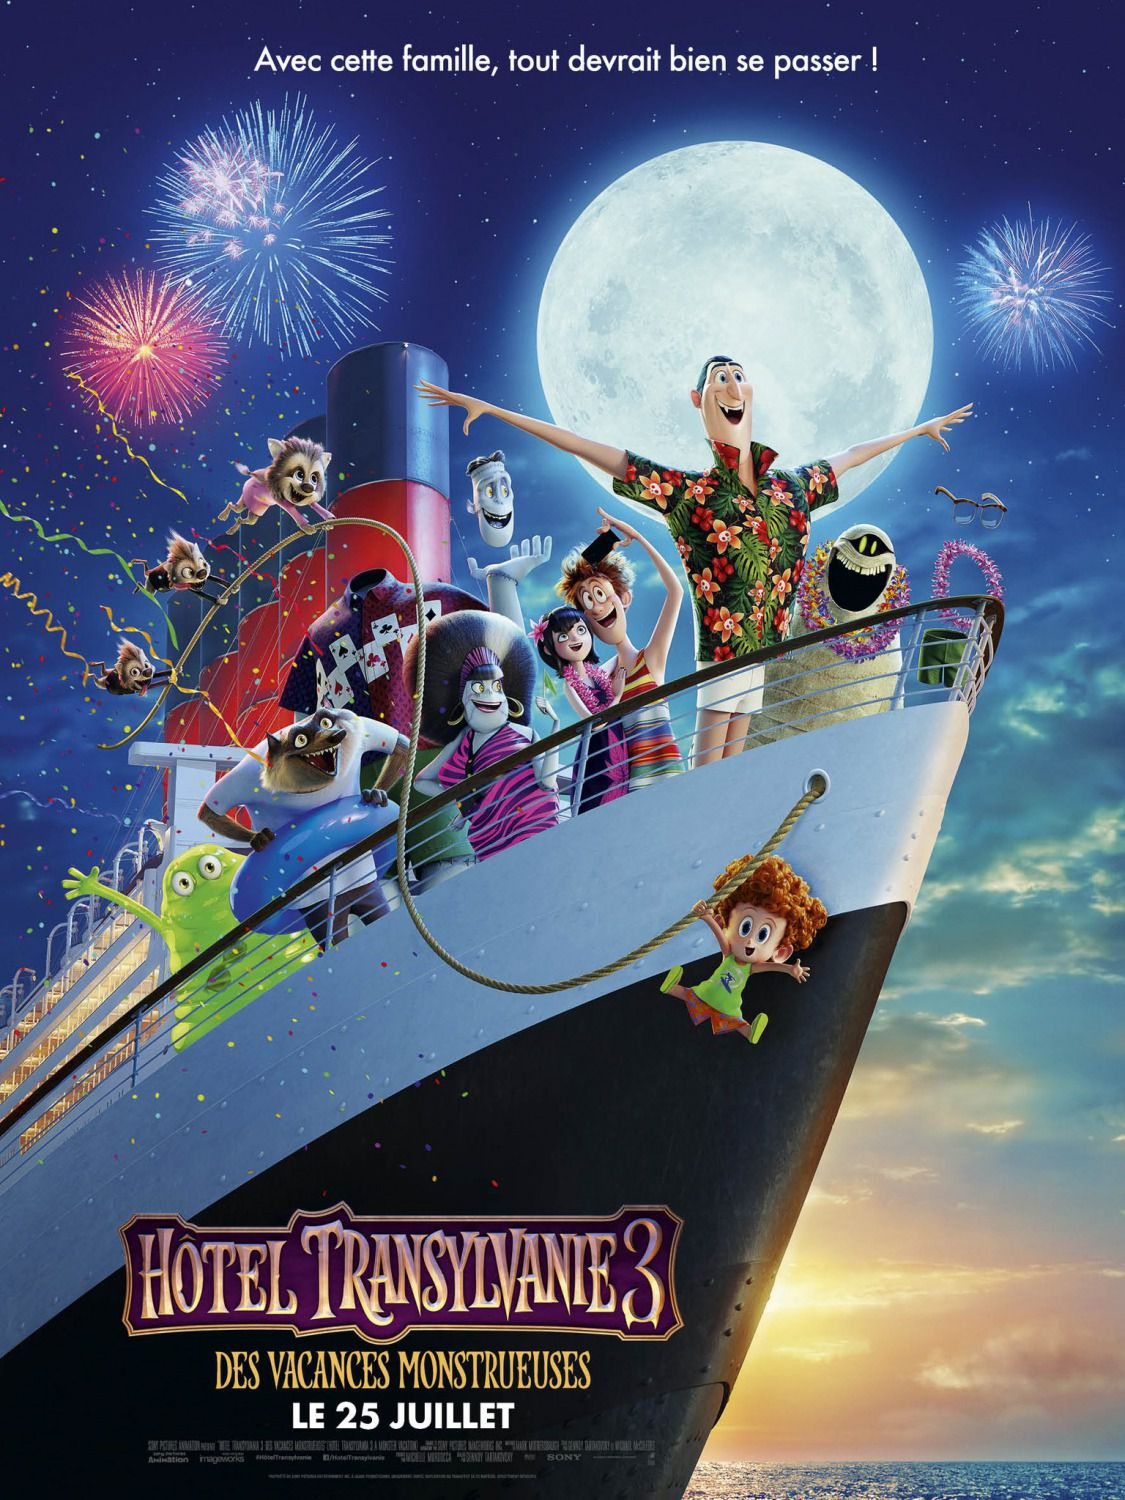 Hotel Transylvania 3 Summer Vacation - Titanic